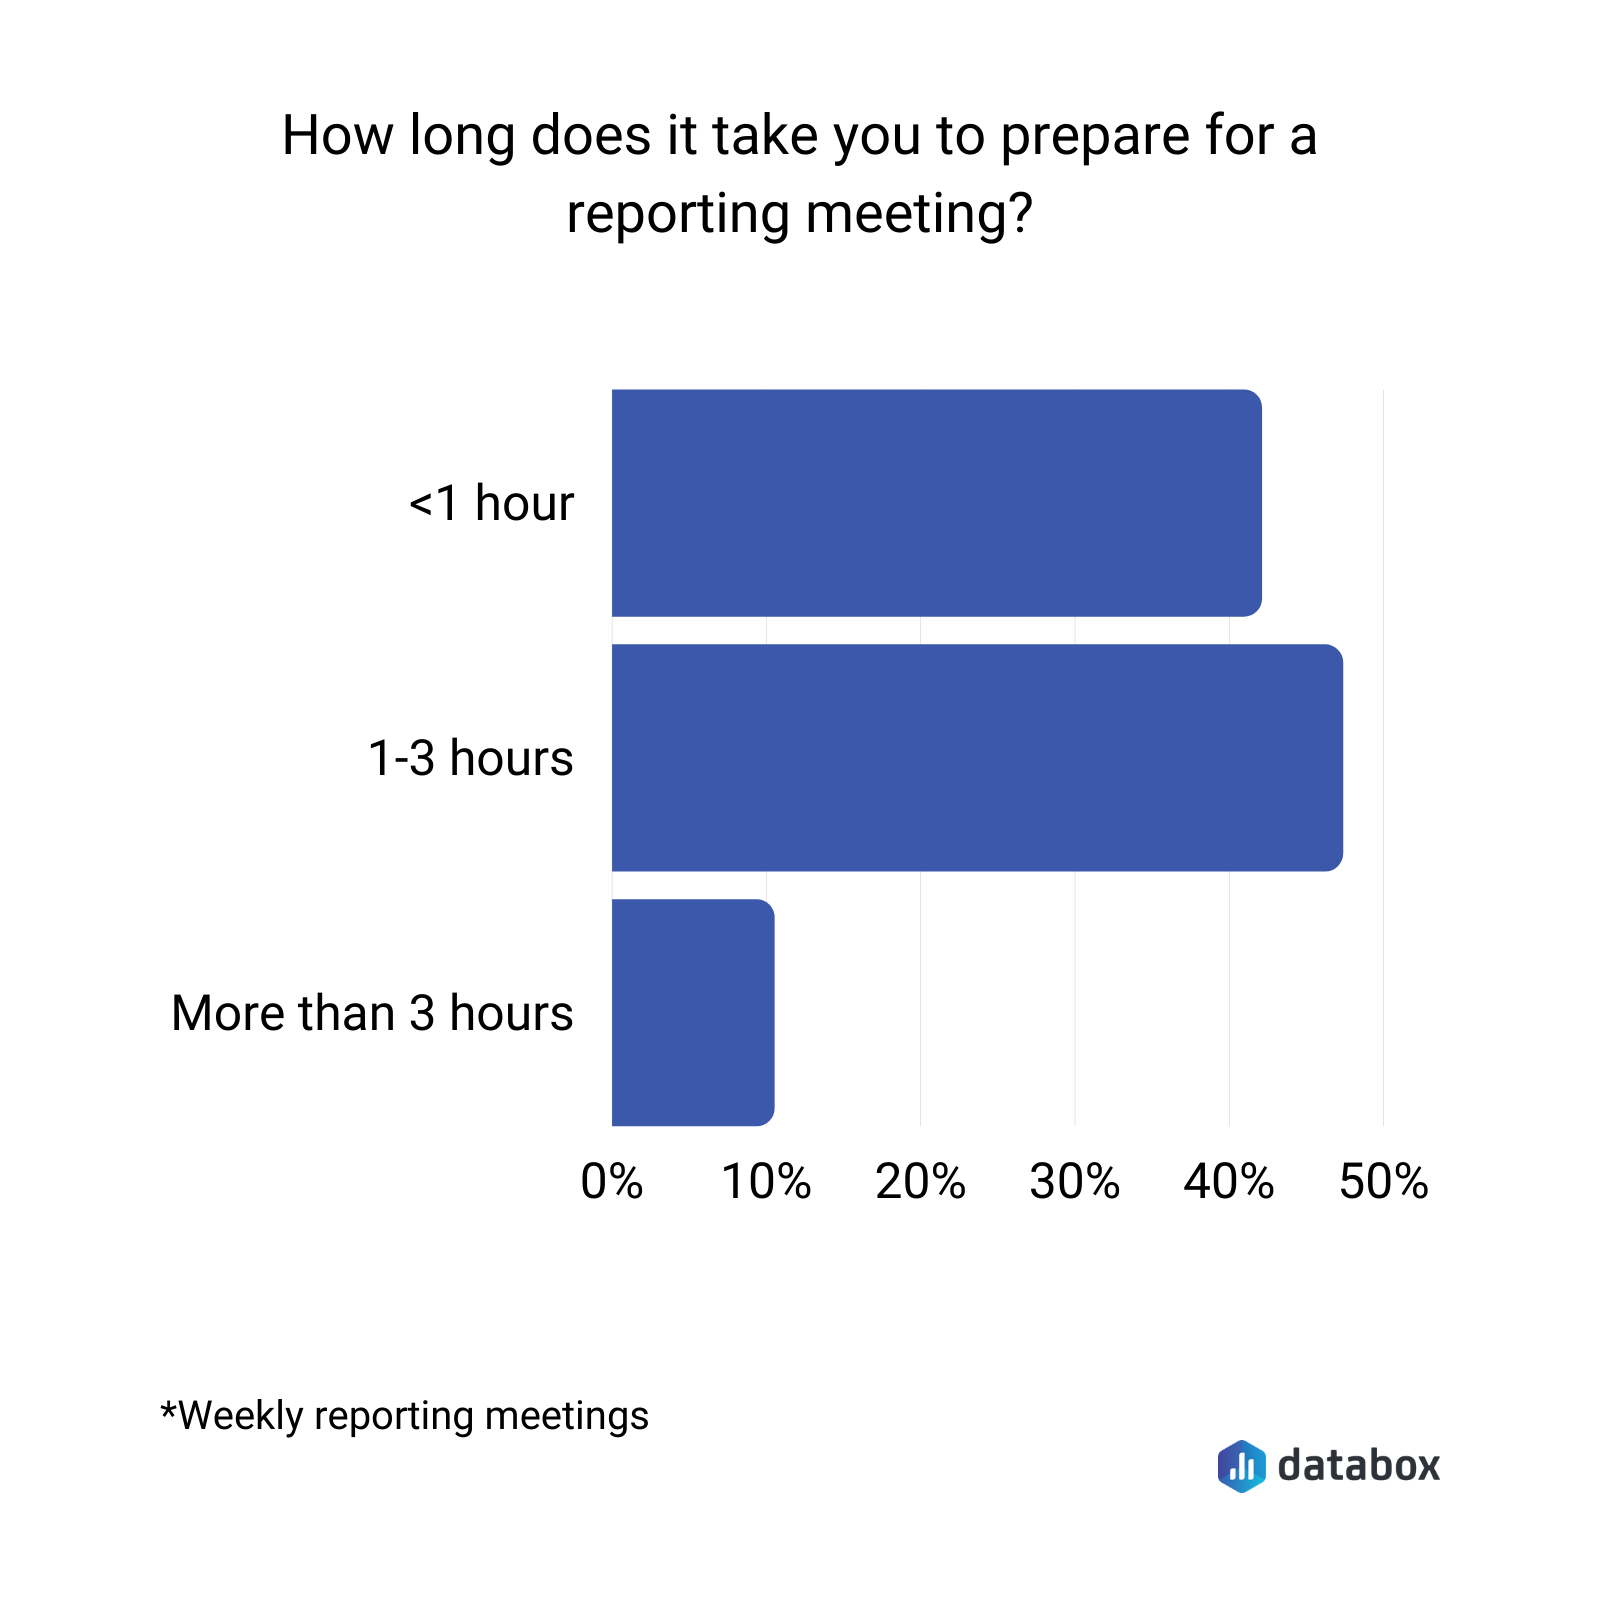 how long does it take you to prepare for a reporting meeting?